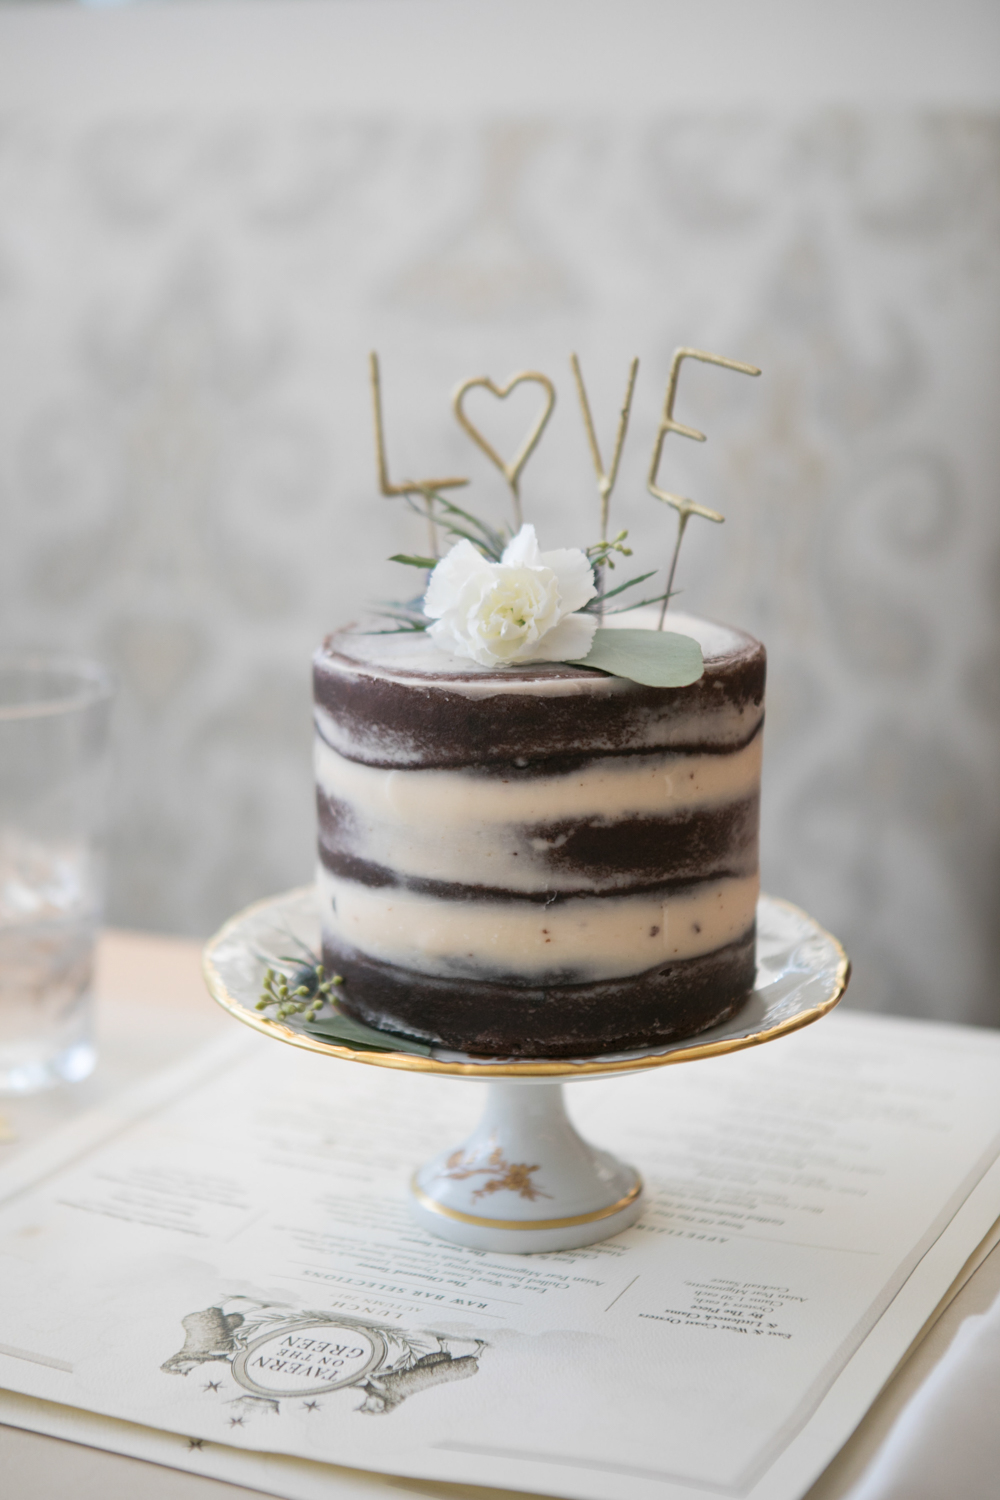 Wedding cake with LOVE topper at Tavern on the Green in Central Park.